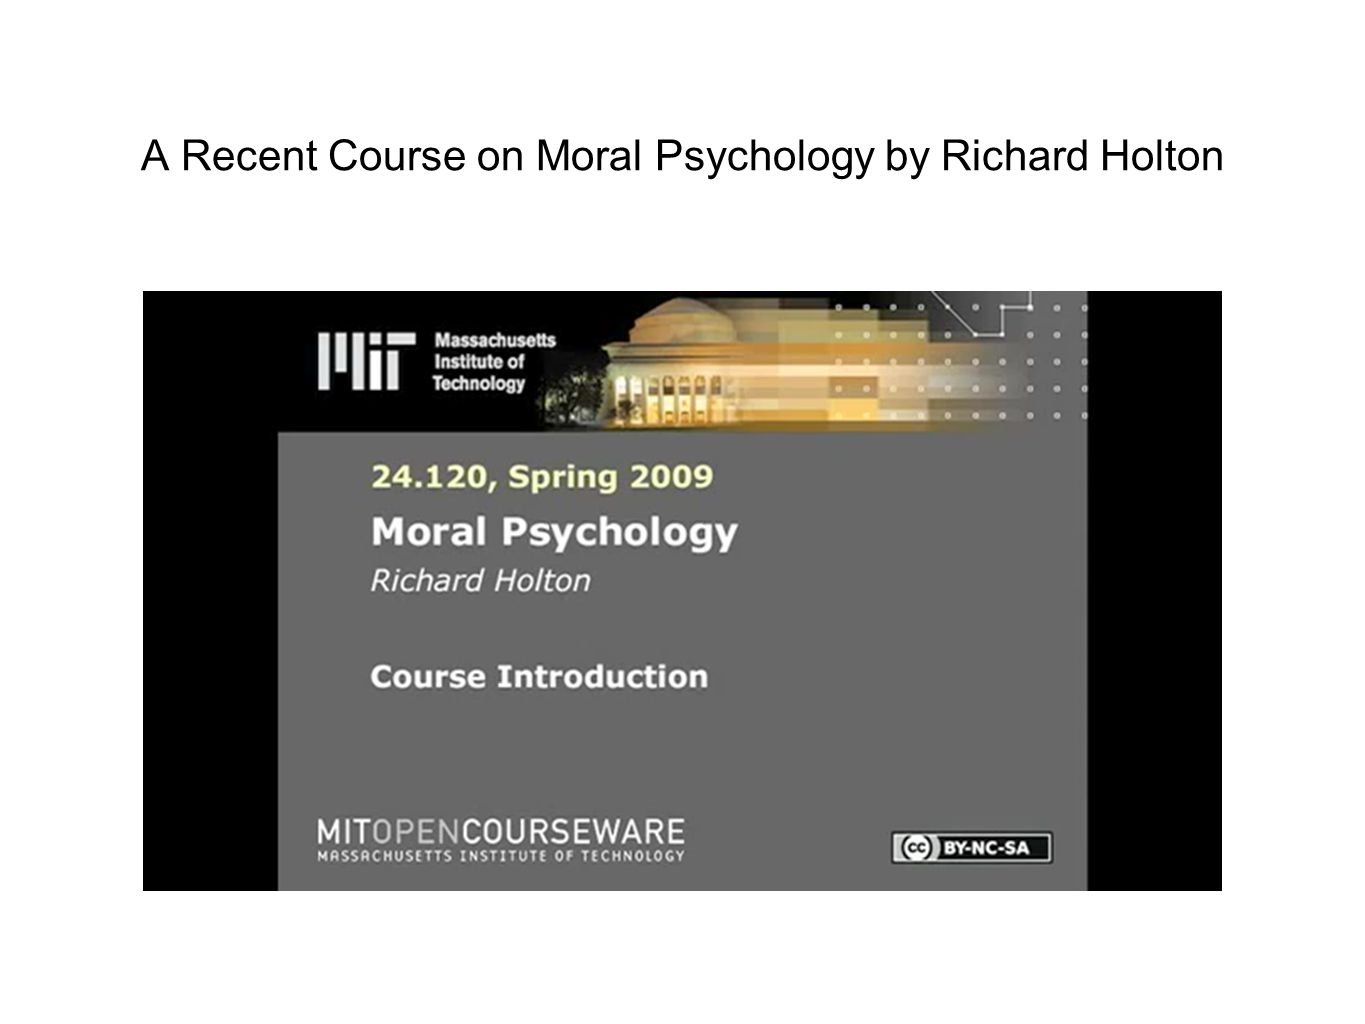 A Recent Course on Moral Psychology by Richard Holton